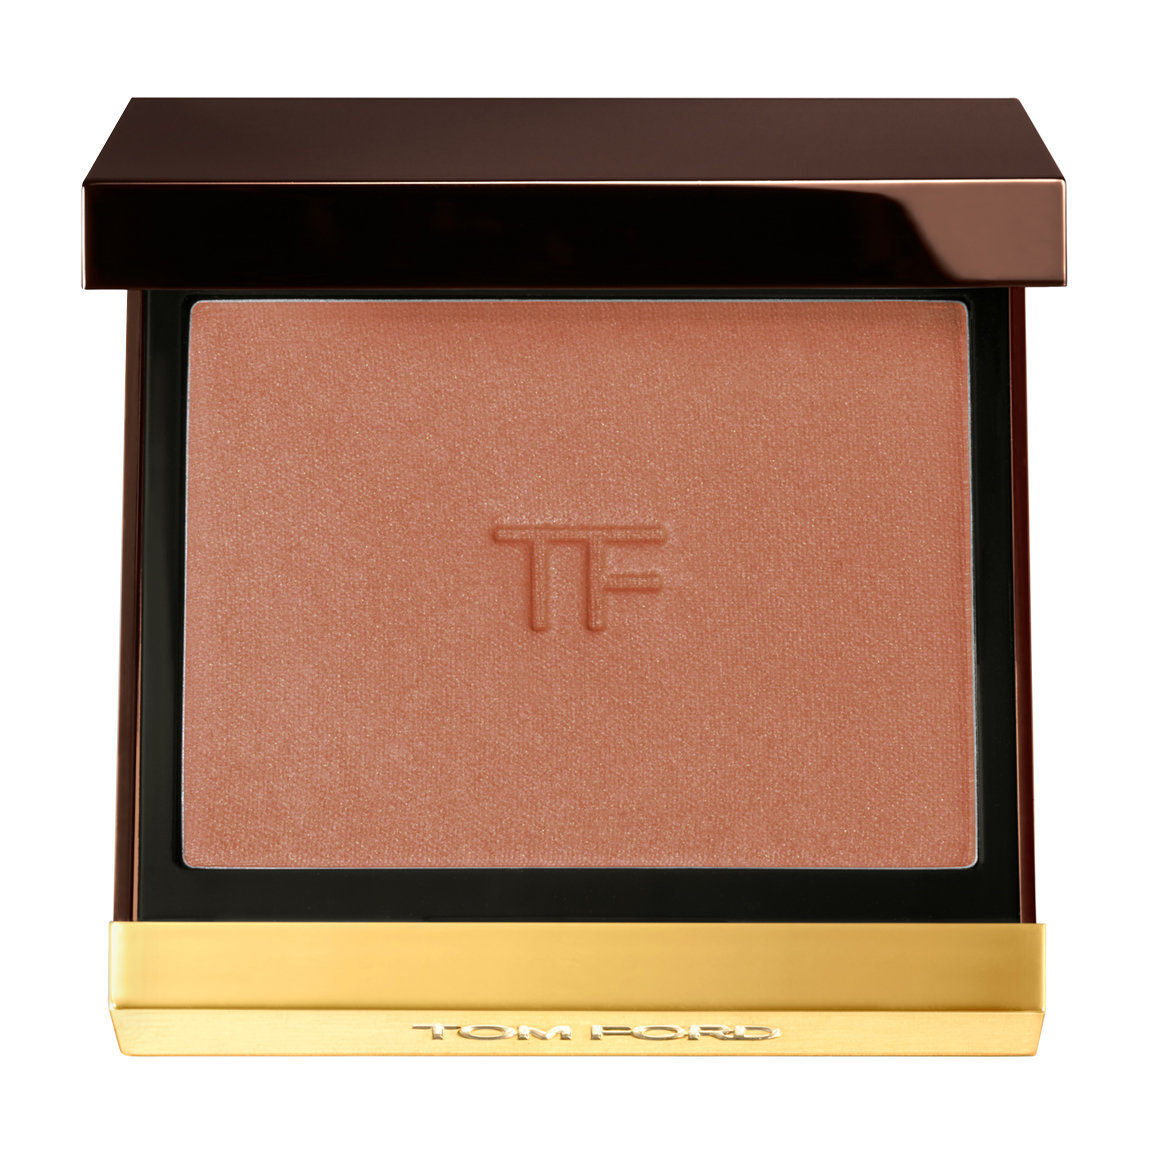 TOM FORD Cheek Color Love Lust alternative view 1 - product swatch.